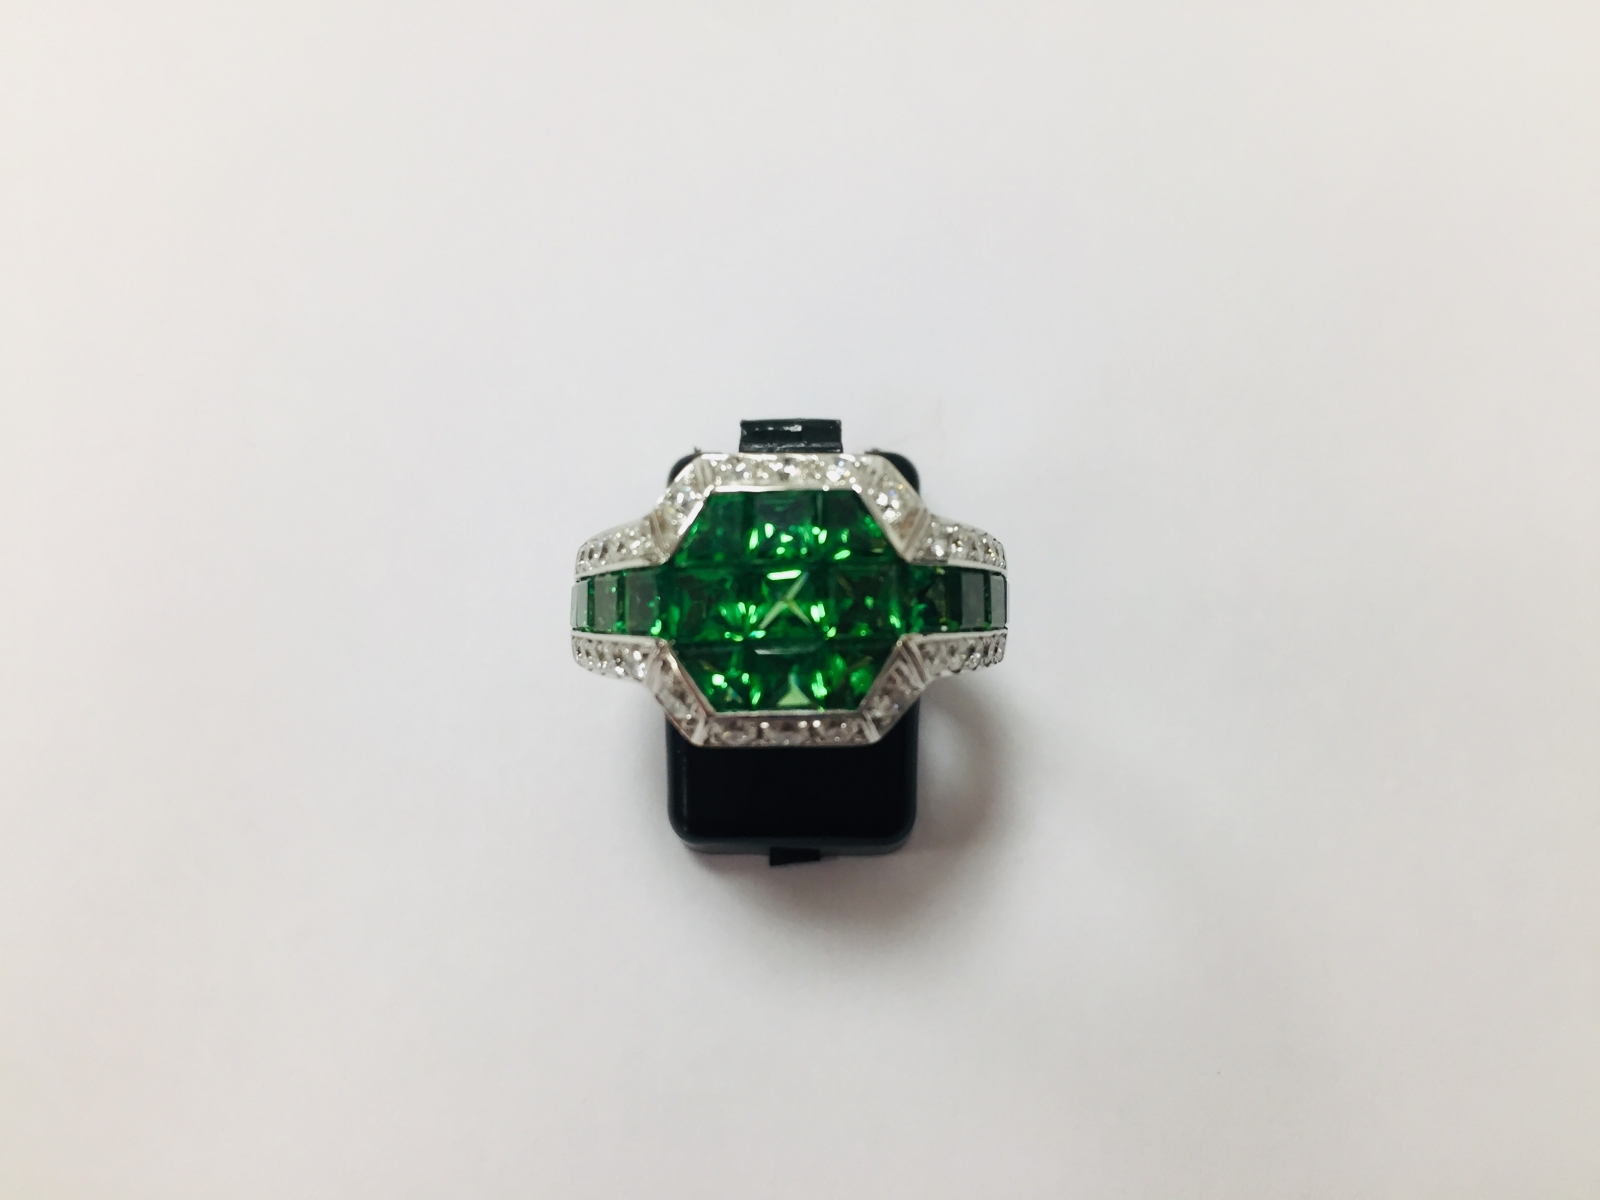 39 - Bague en or blanc18K 750° sertie invisible de grenats verts, tsavorites et diamants. Adjugé 1000€